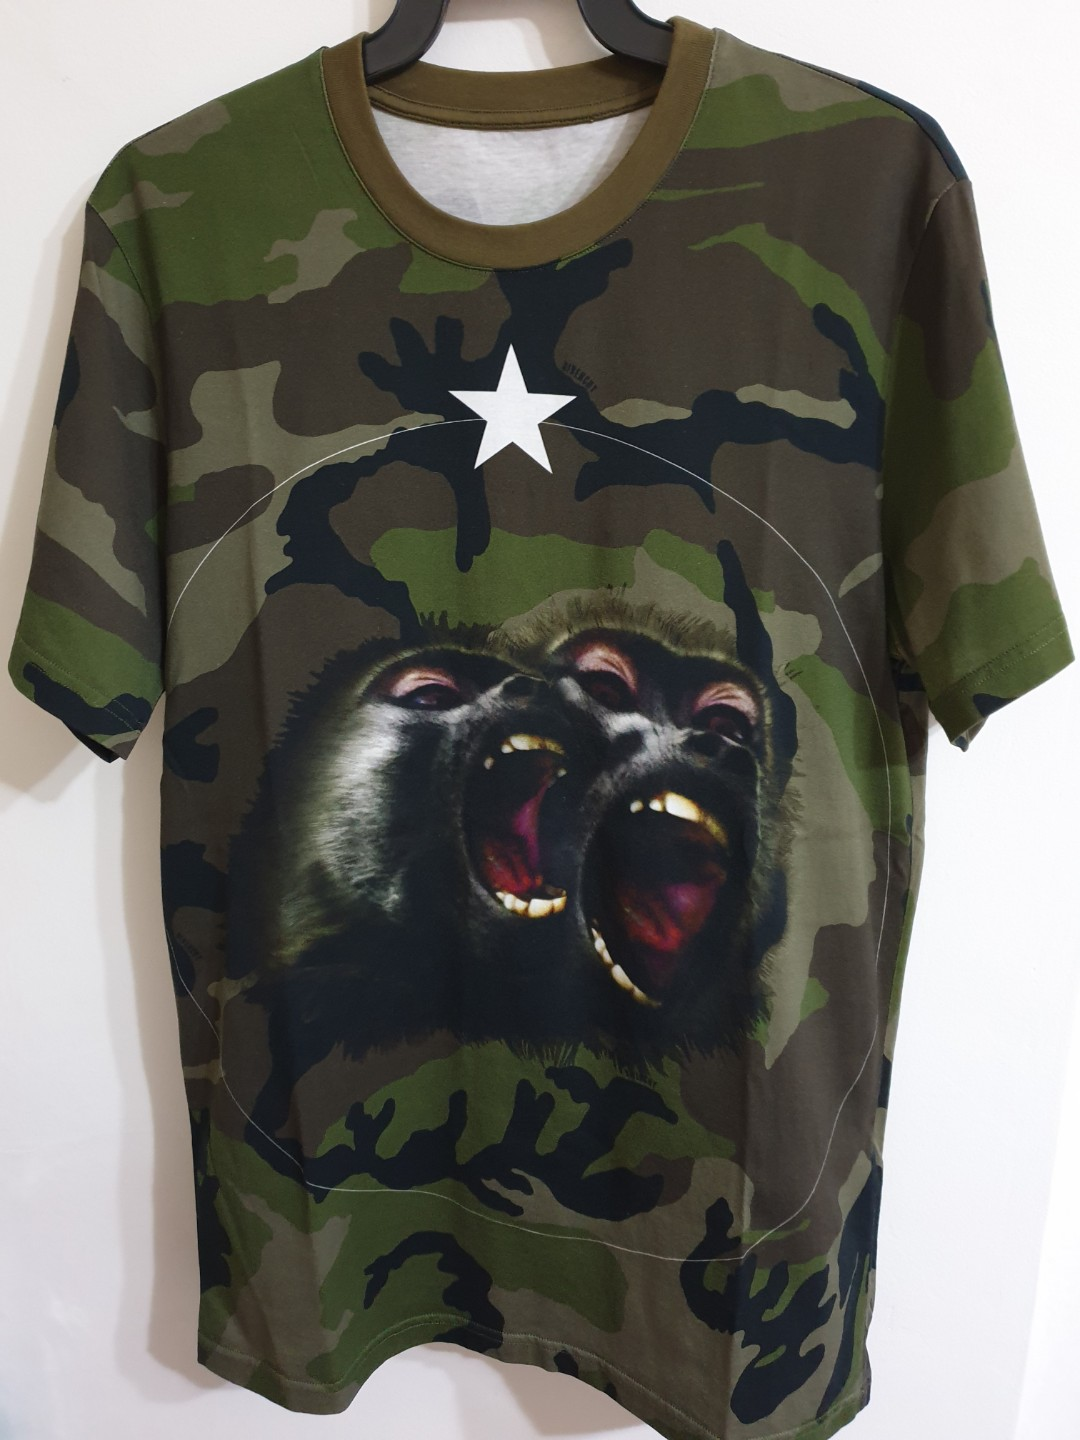 97dfbeb1a Givenchy Camo Monkey Brothers Tee, Men's Fashion, Clothes, Tops on ...